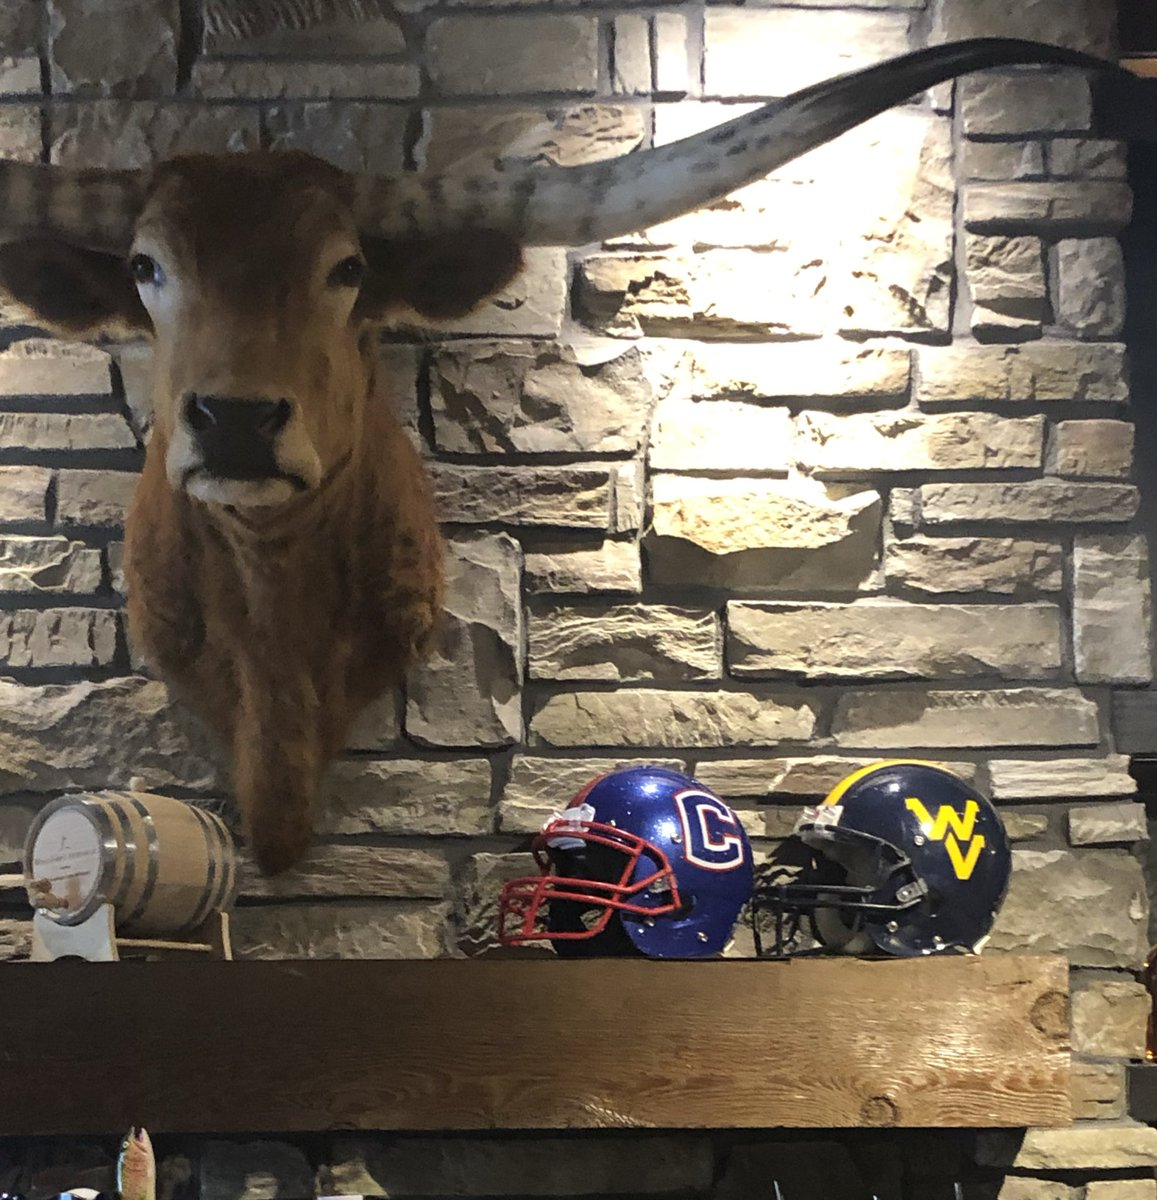 Cool walking into @LongHornSteaks in Cleveland, TN and seeing Walker Valley being represented. Love seeing our program in the community. #everyonetogether #newlook #chooseWV<br>http://pic.twitter.com/JaFoHekhKE – à Longhorn Steakhouse